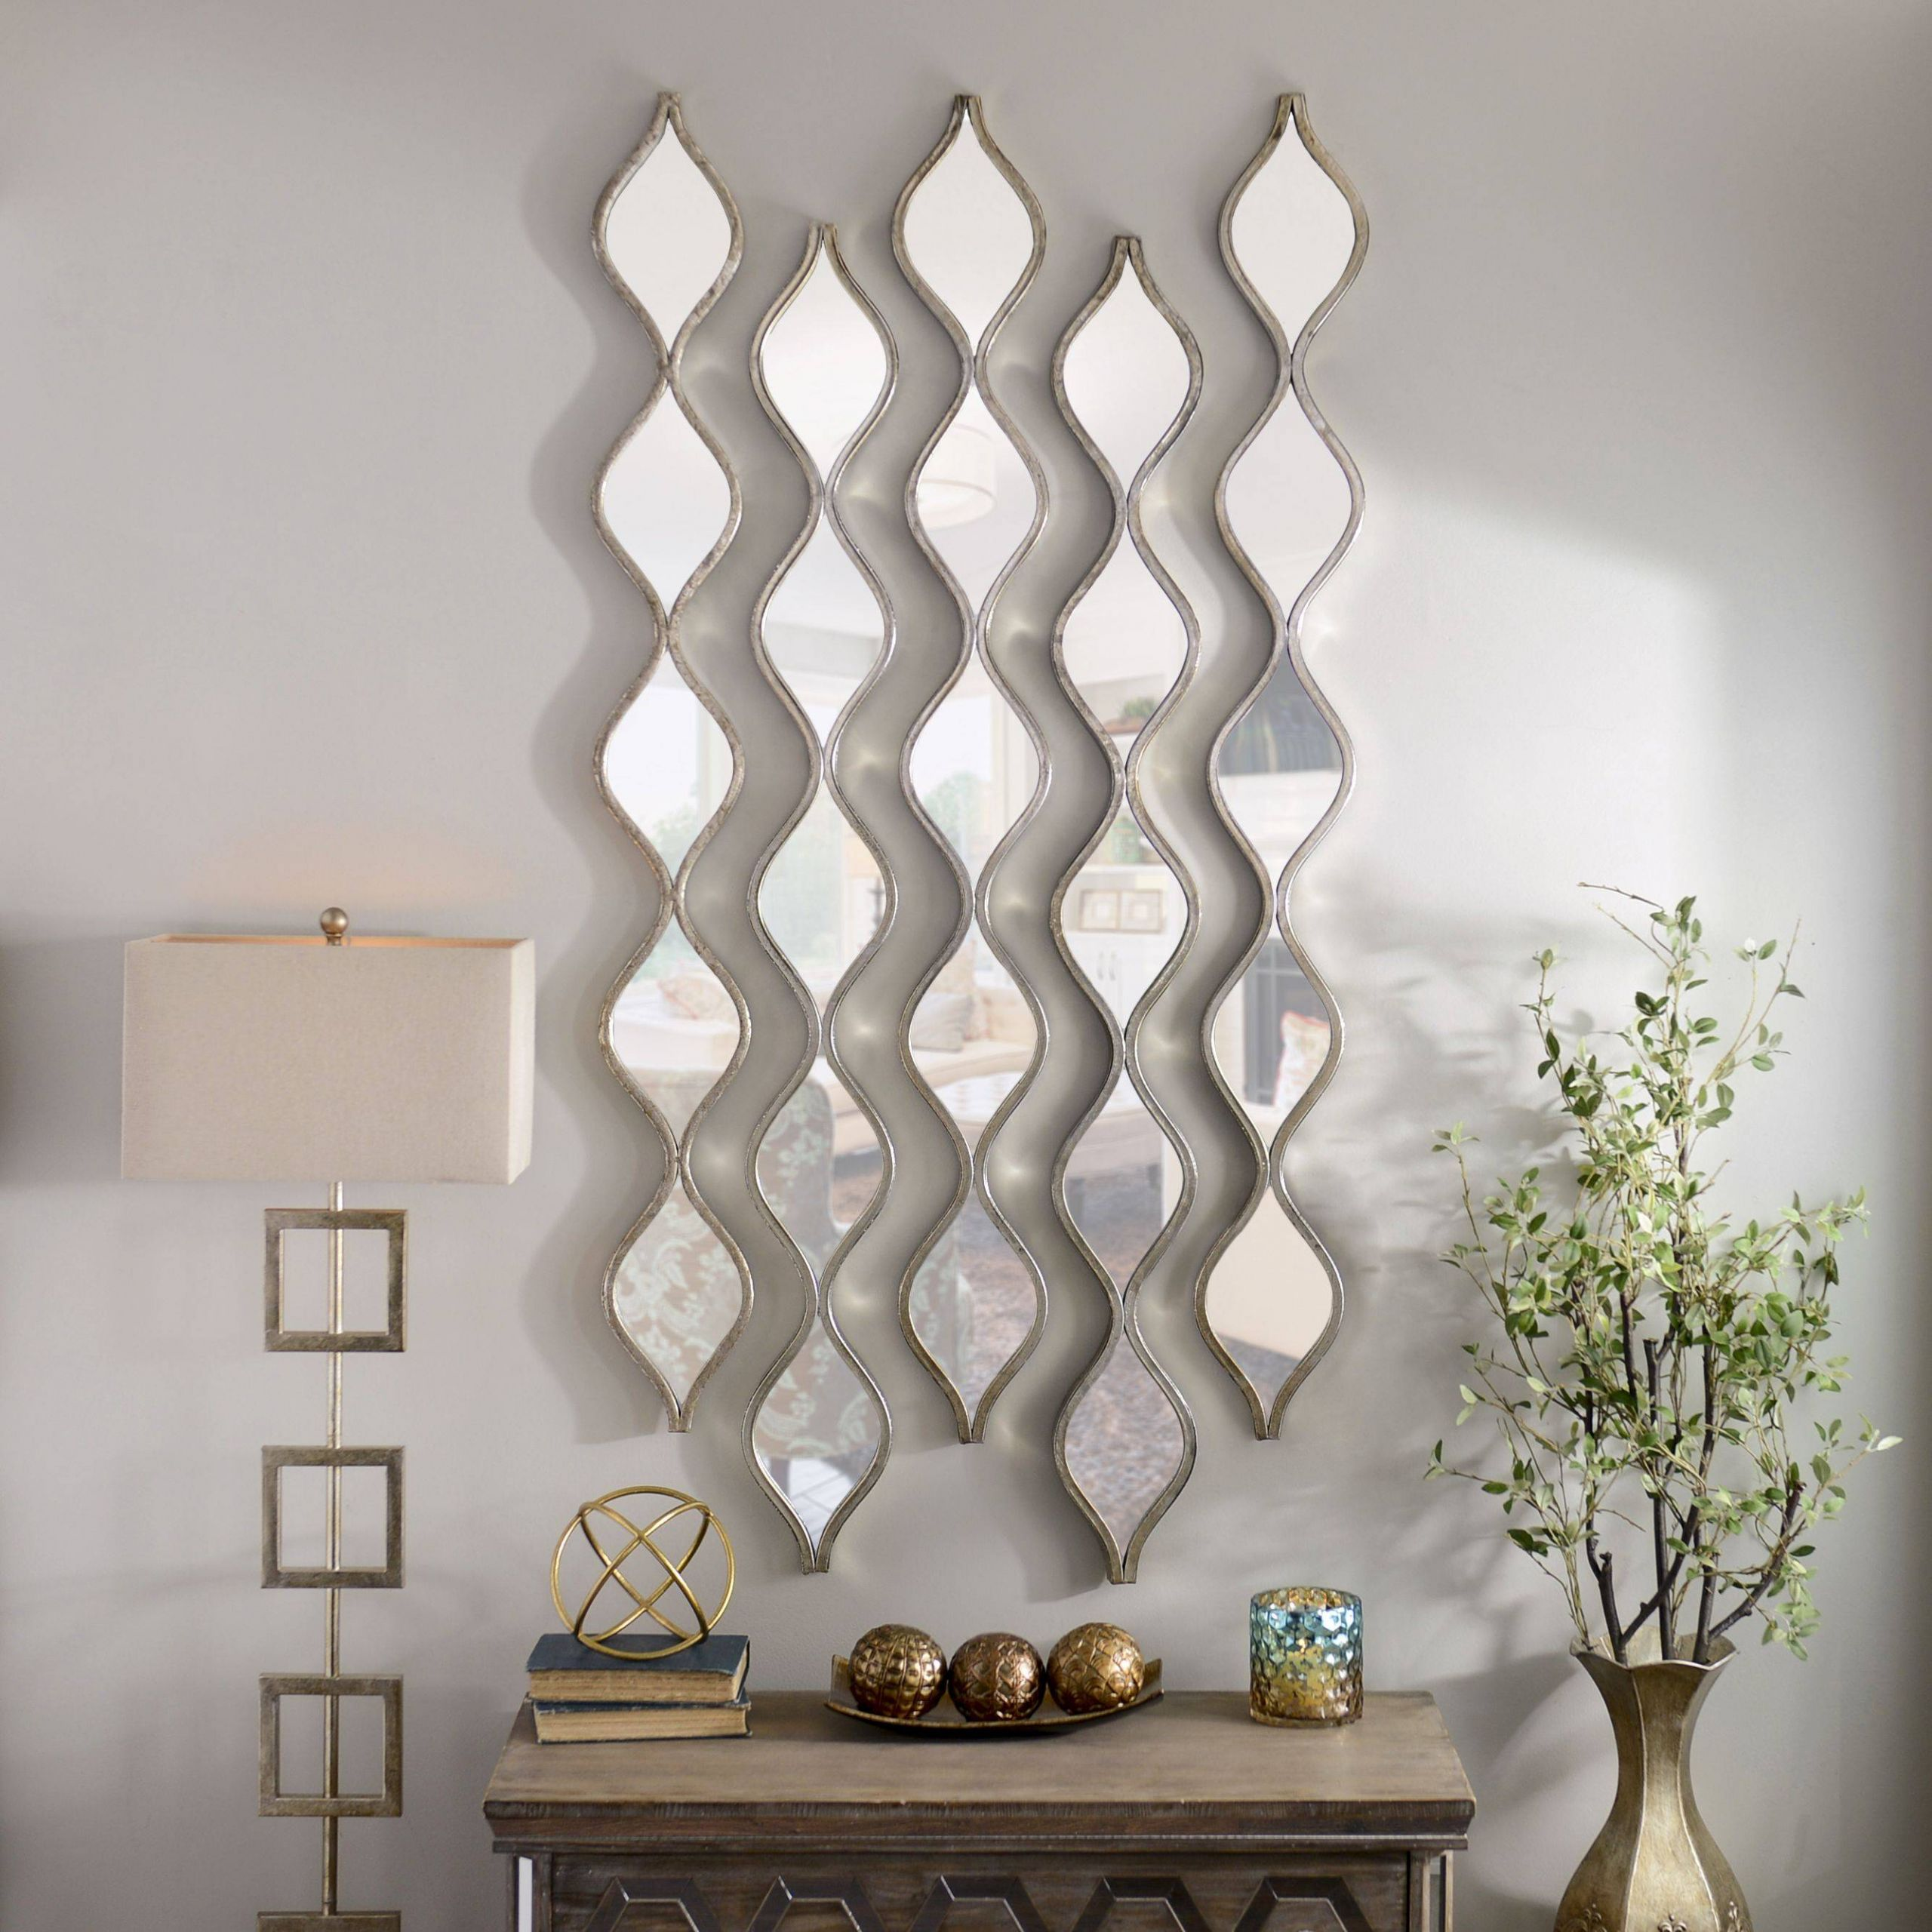 Incredible Old Wood Wall Decor New Bring the Perfect Bination Of Modern Chic and Old